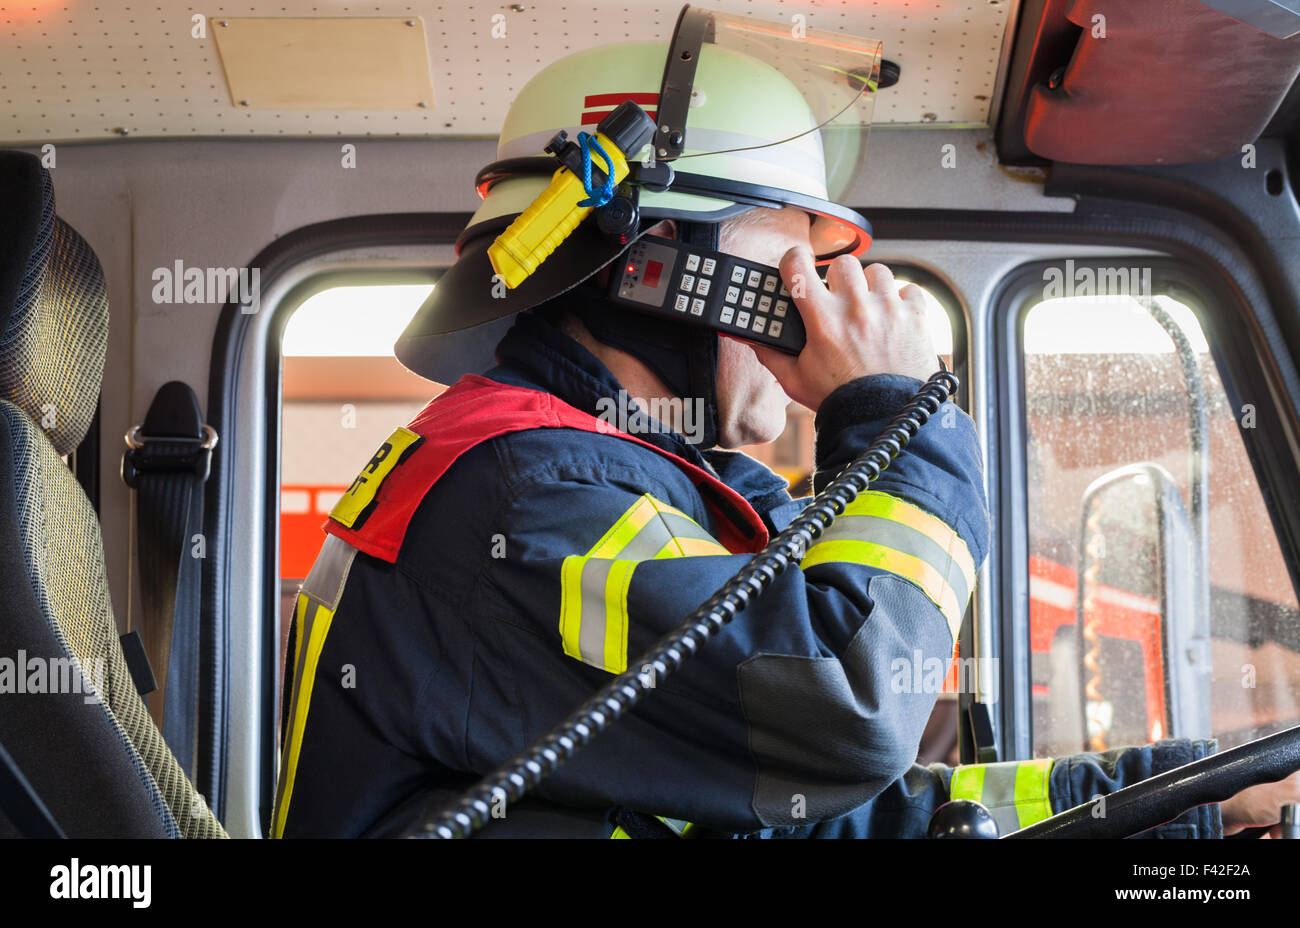 Fireman in action vehicle with radio - Stock Image